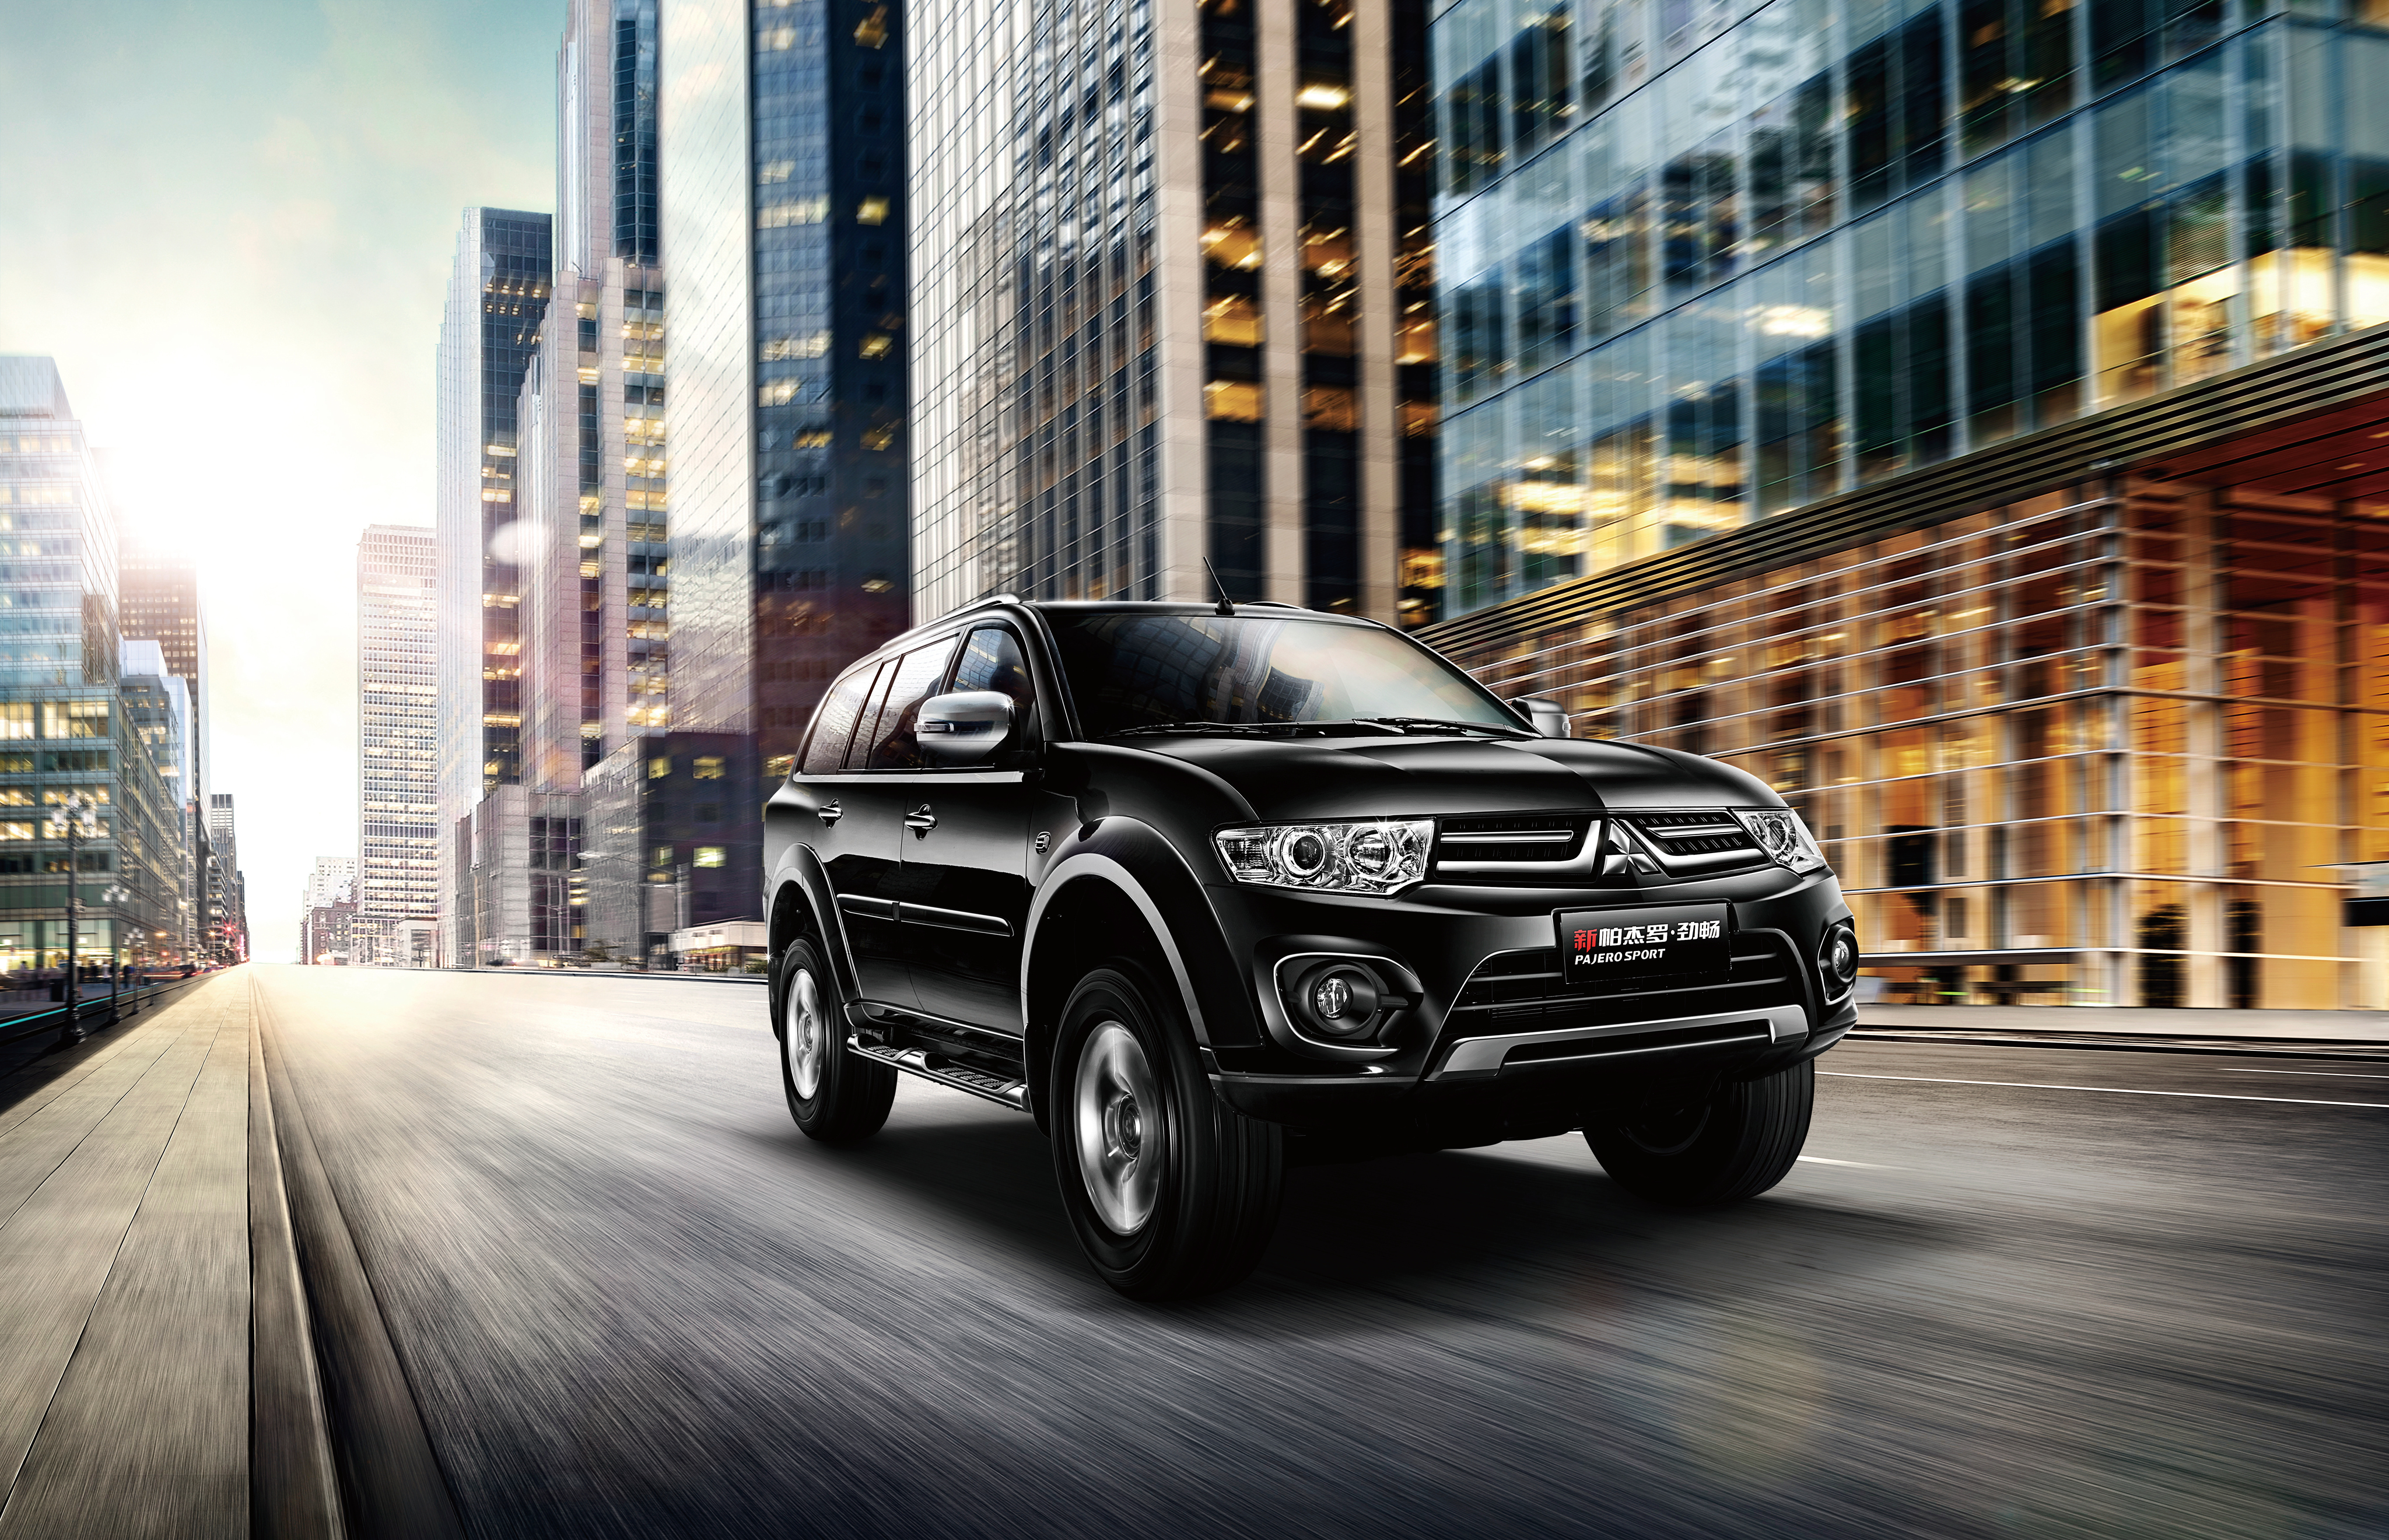 136163 download wallpaper Cars, Mitsubishi, Pajero, Side View, City, Traffic, Movement screensavers and pictures for free